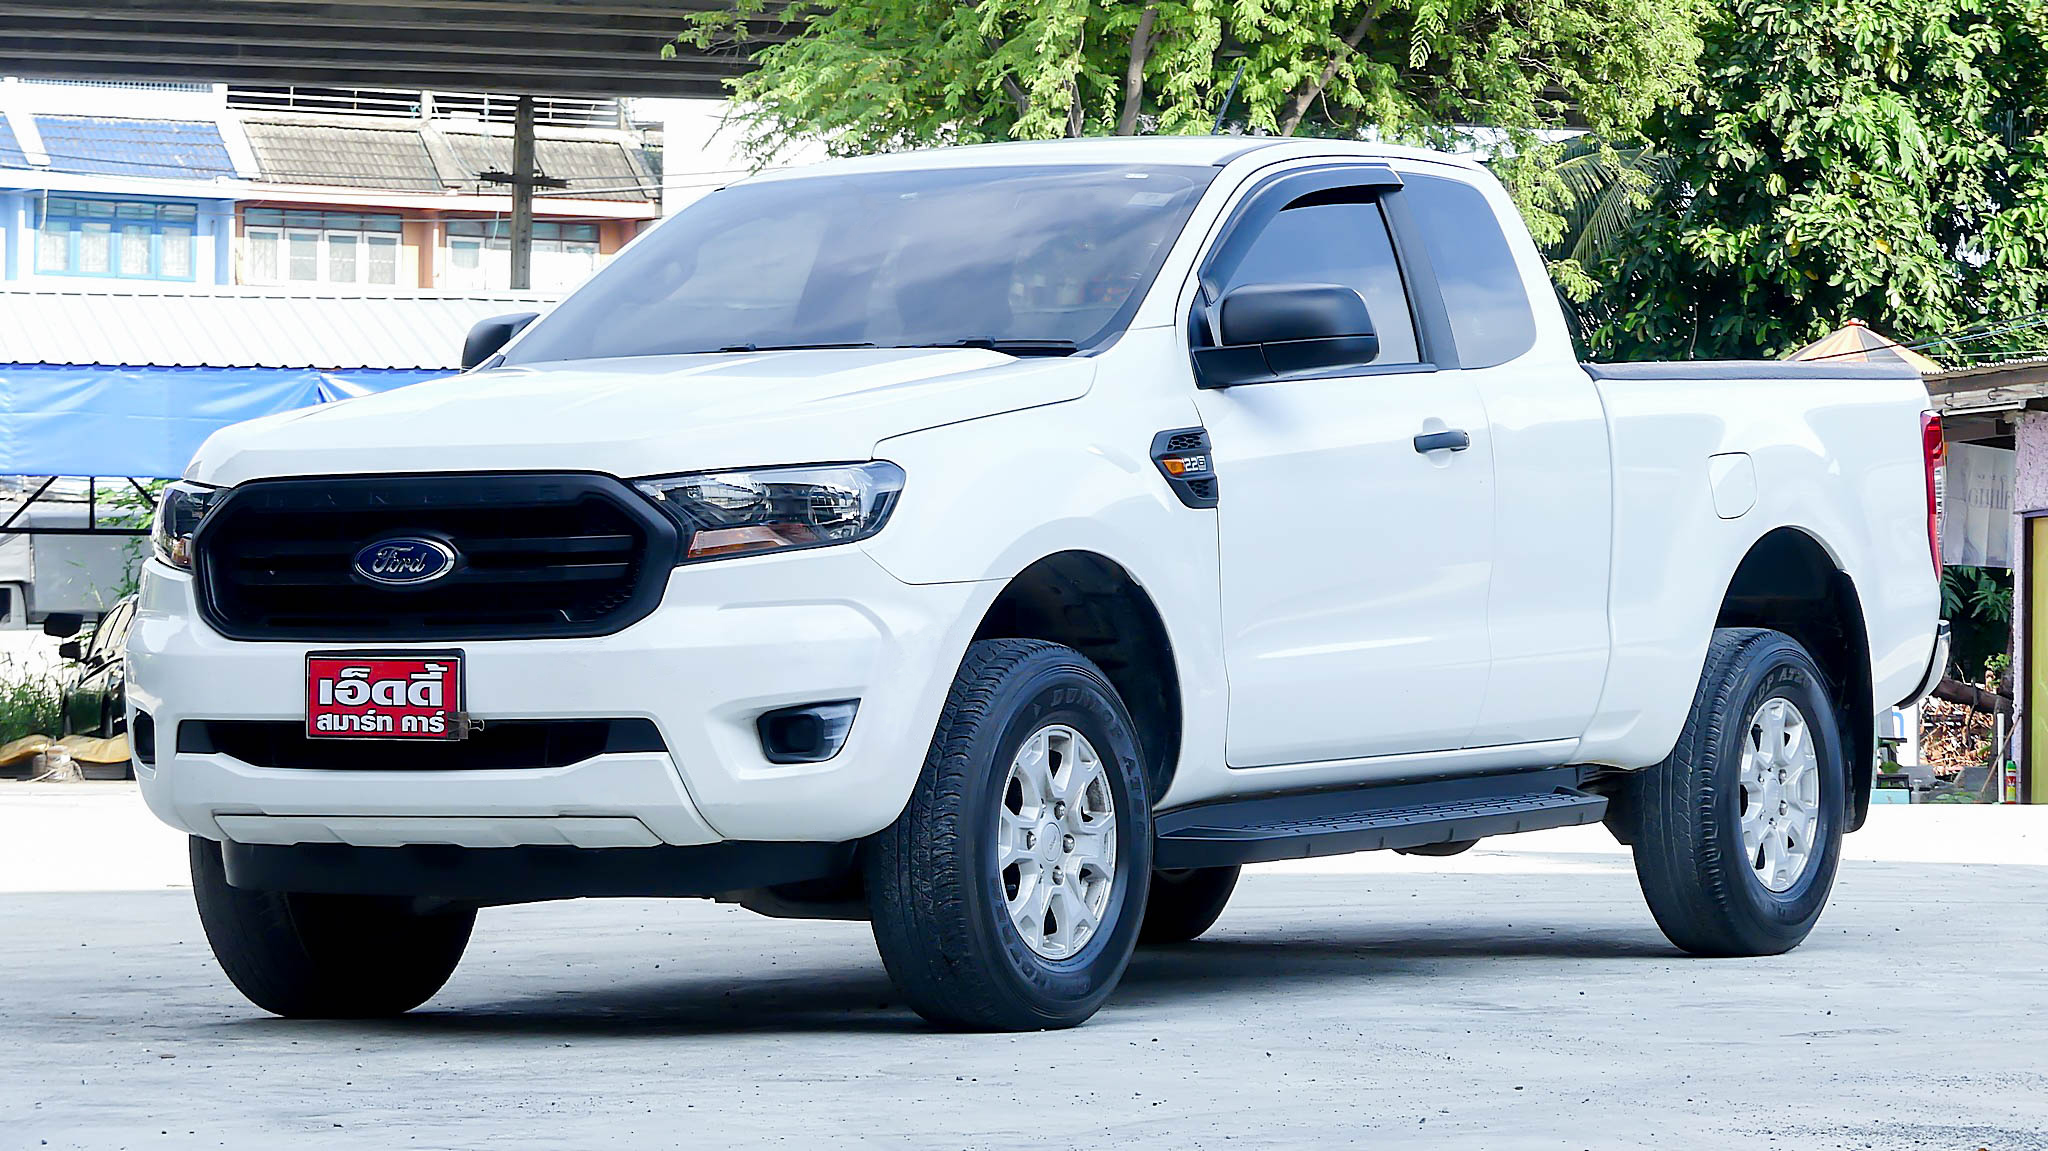 Ford Ranger Hi-Rider 2.2 XL+ / MT ปี 2019